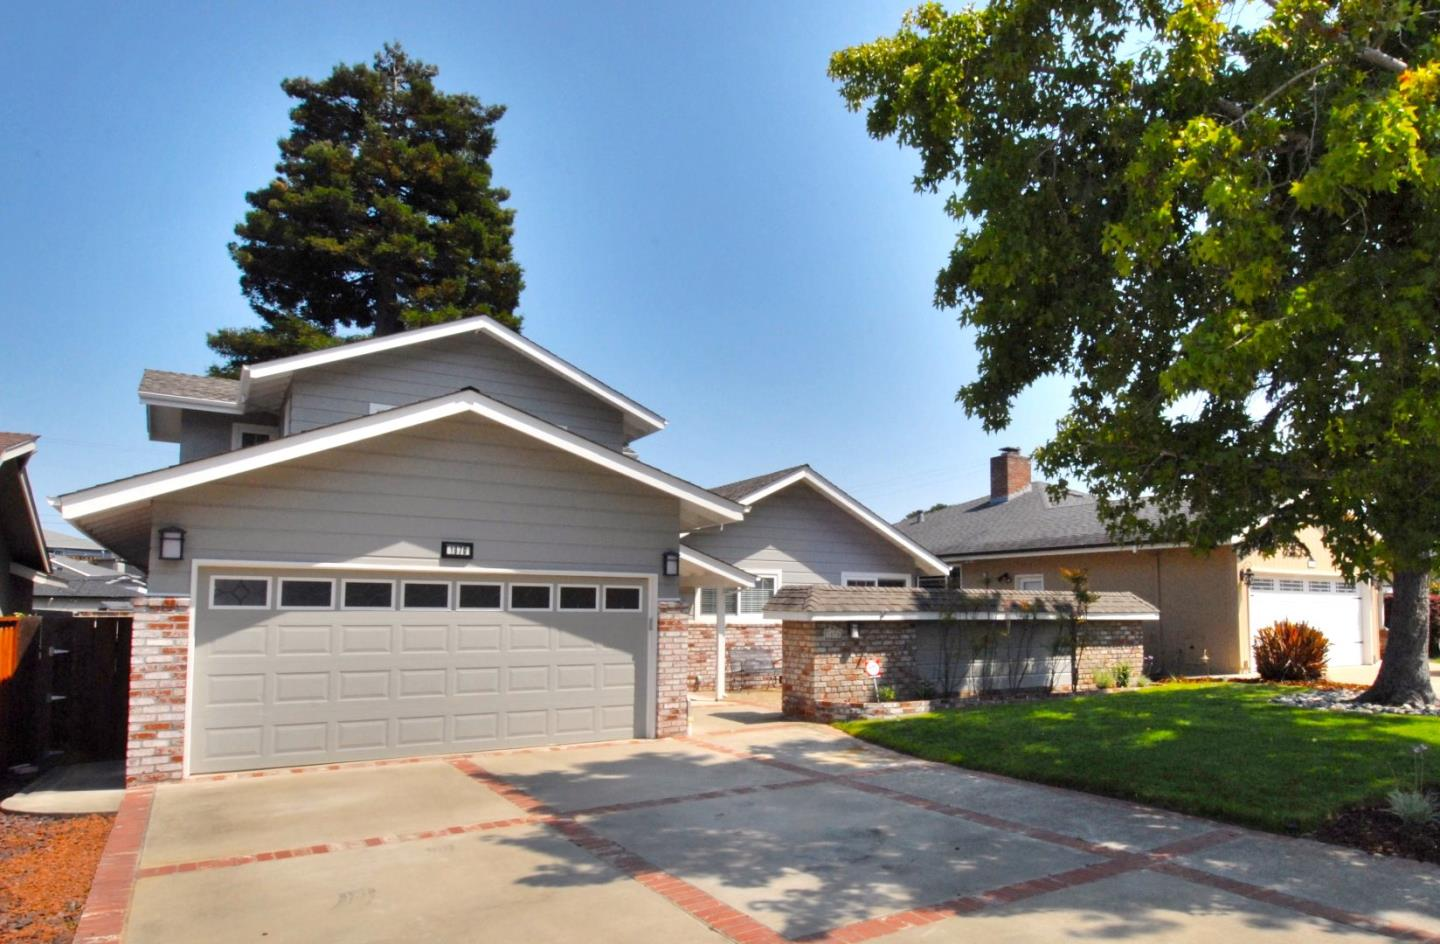 1870 Parkview Drive, SAN BRUNO, CA 94066